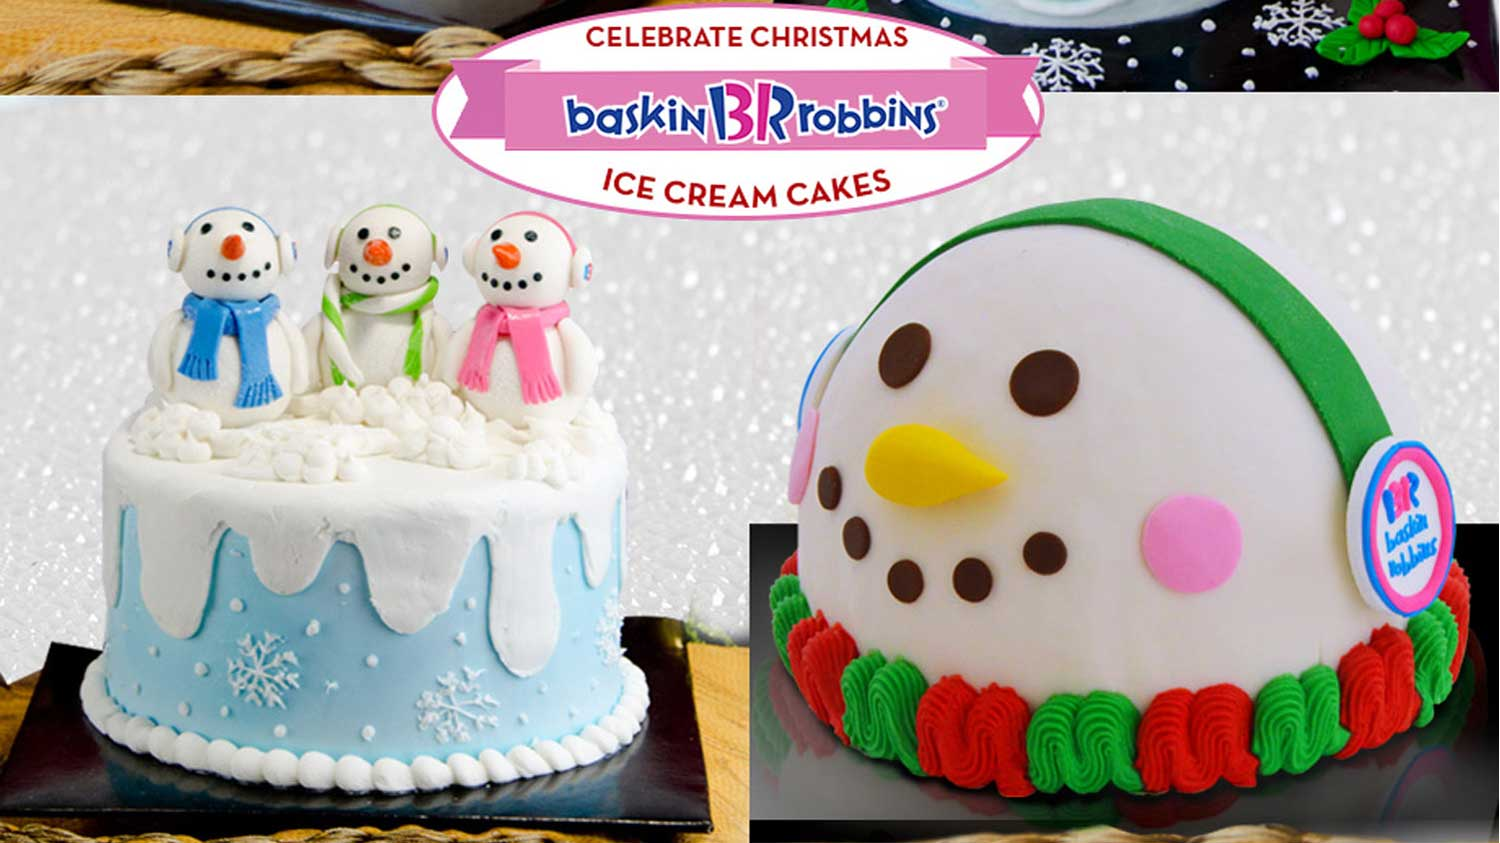 Make Christmas special with Baskin-Robbins ice cream cakes